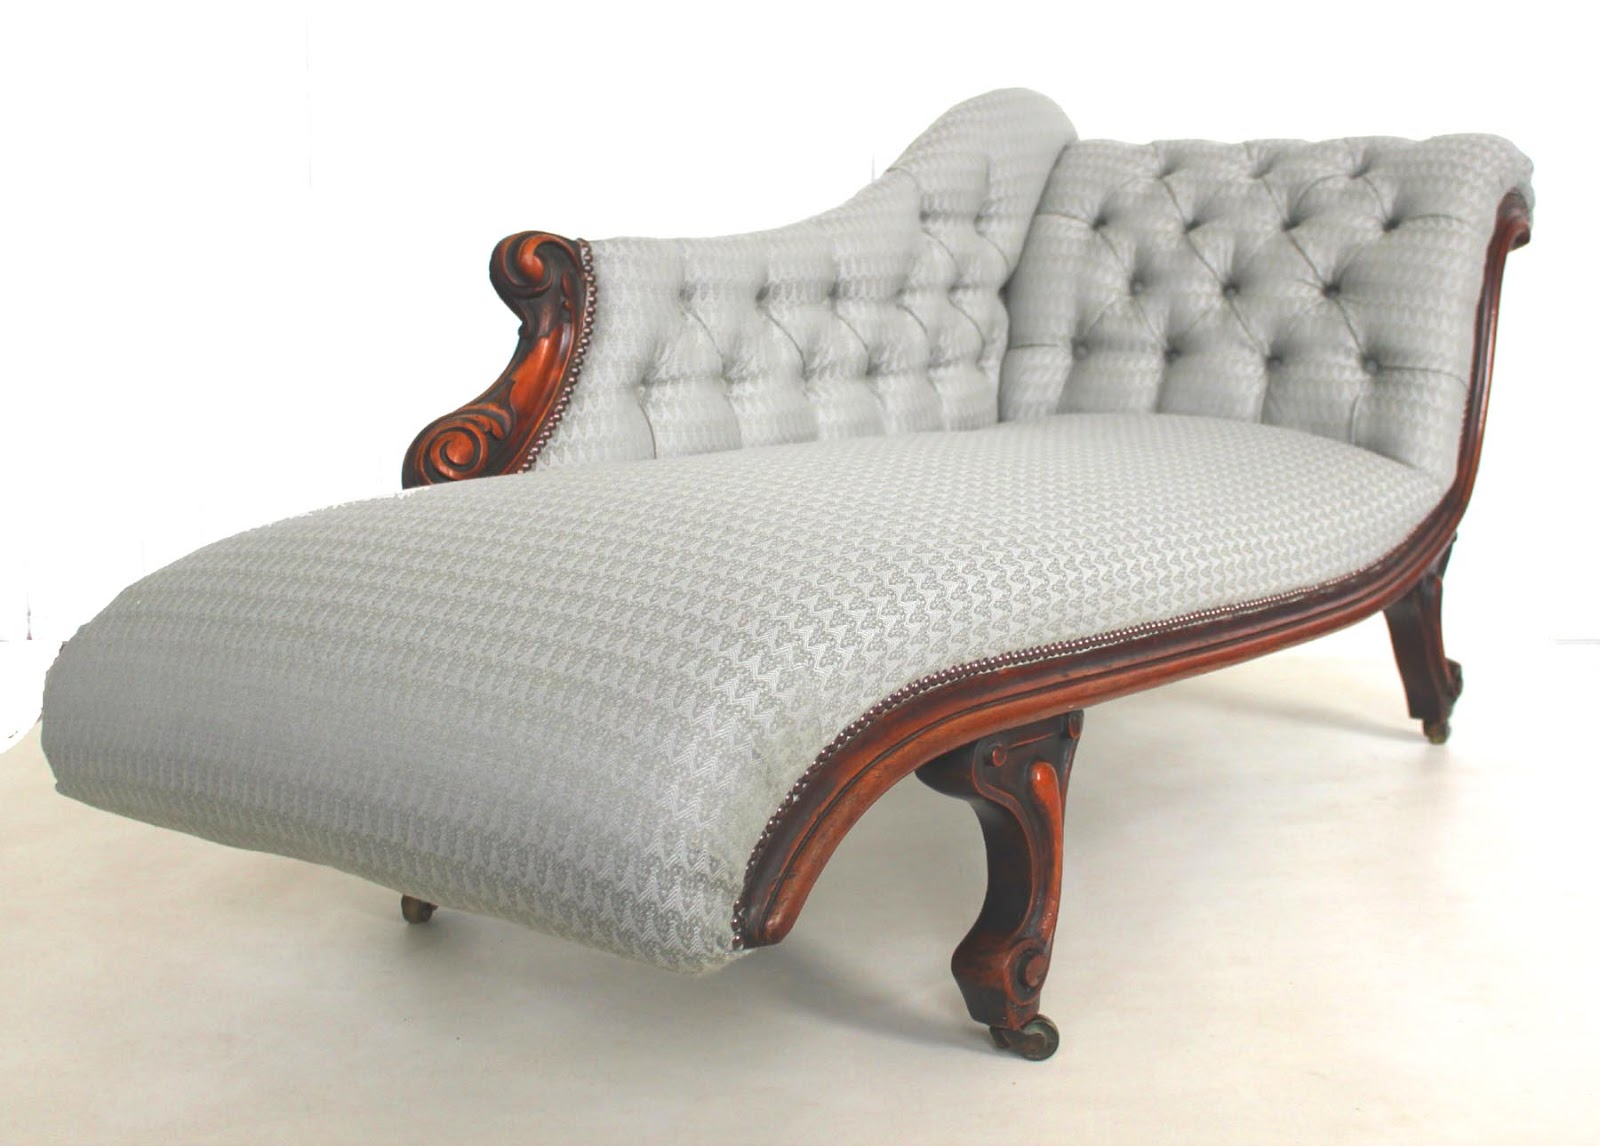 Mick Sheridan Upholstery: Victorian Chaise Longue in Bute fabrics on victorian candles, victorian mother's day, victorian rocking chair, victorian chest, victorian wheelchair, victorian couch, victorian club chair, victorian loveseat, victorian recliner, victorian credenza, victorian nursing chair, victorian chaise lounge, victorian chaise furniture, victorian sideboard, victorian urns, victorian folding chair, victorian era chaise, victorian office chair, victorian country, victorian tables,